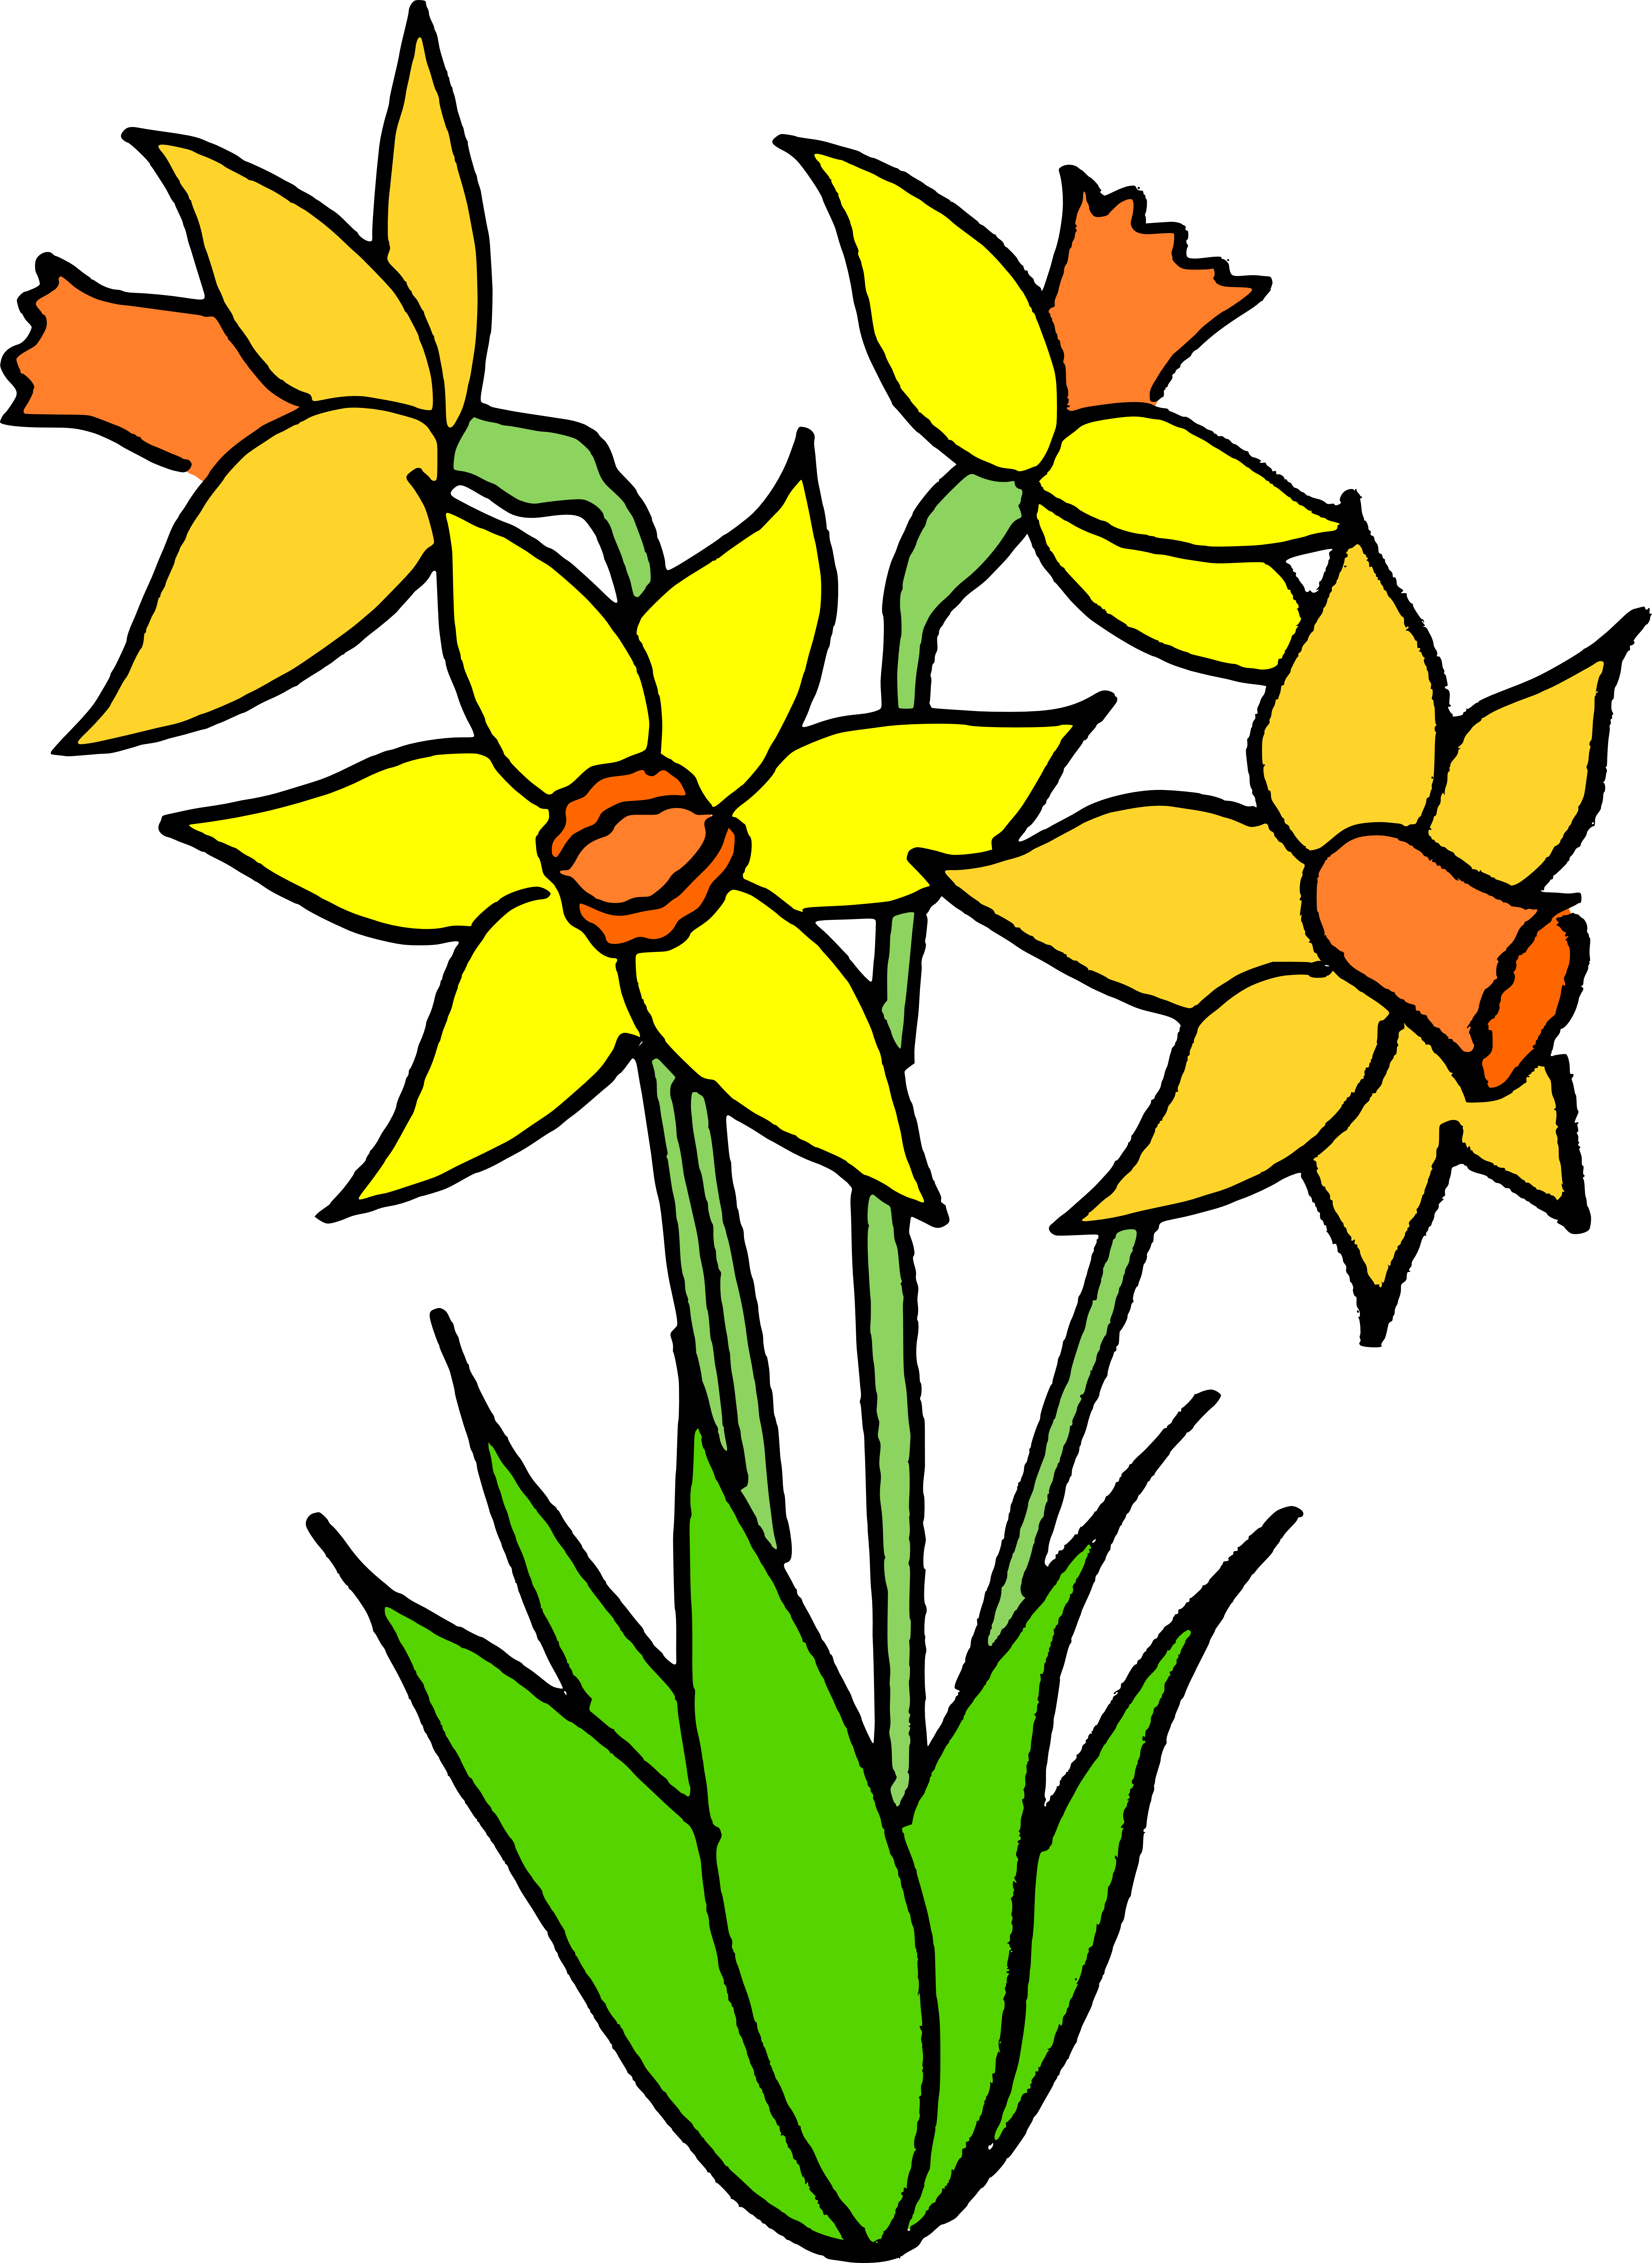 Flowers clipart name. That flower answers the